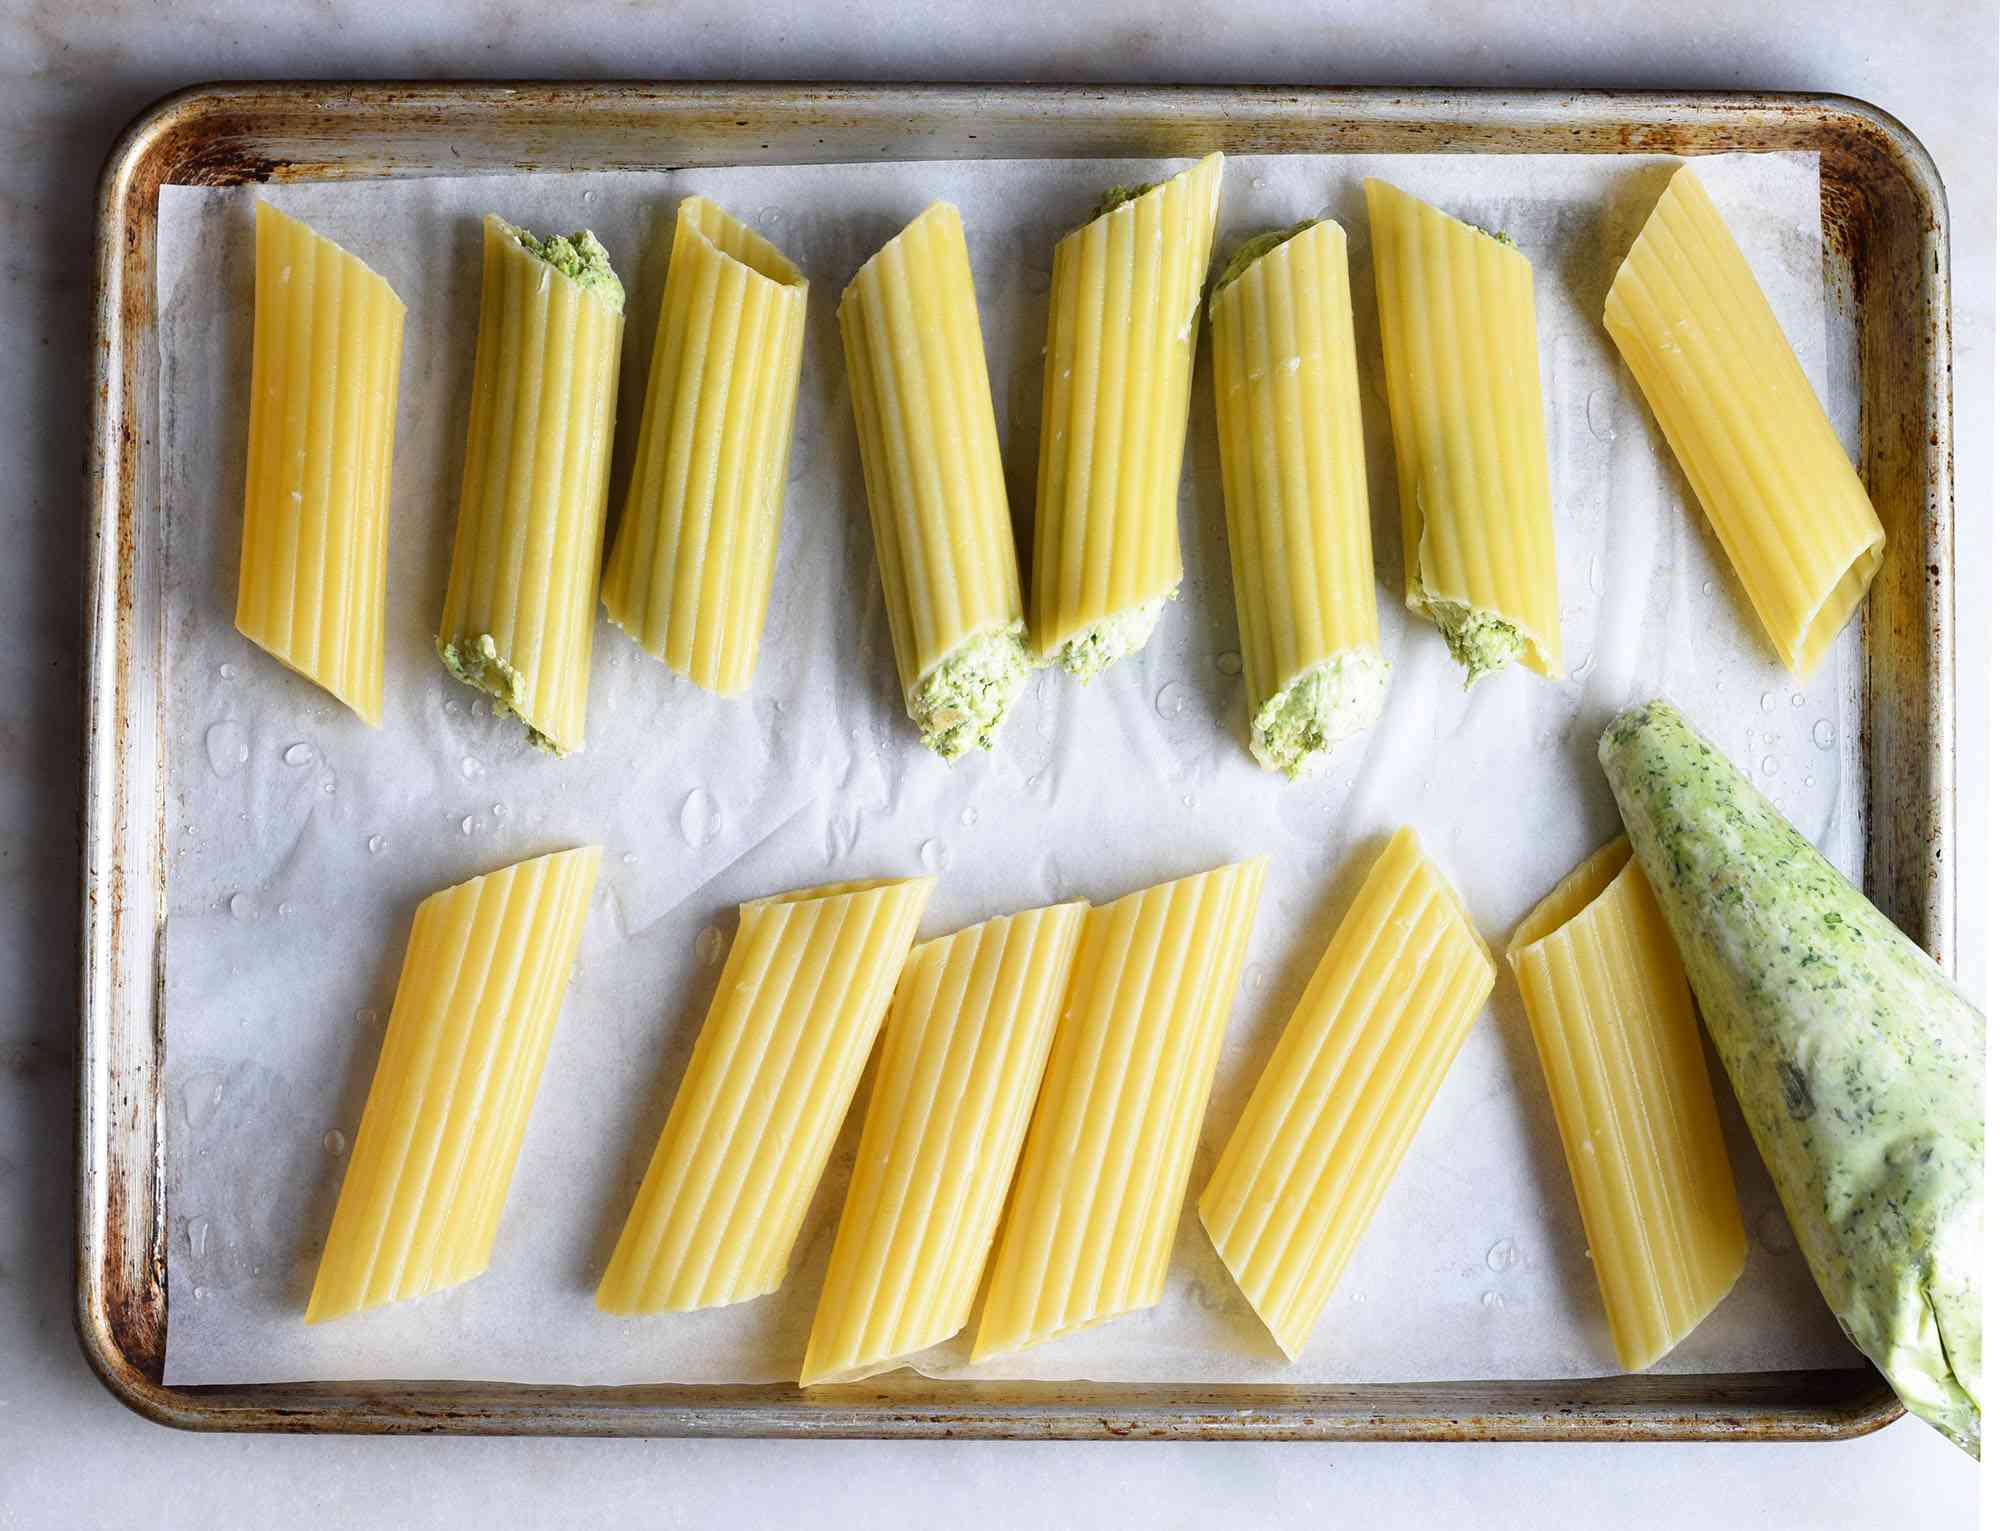 manicotti noodles filled with chicken filling